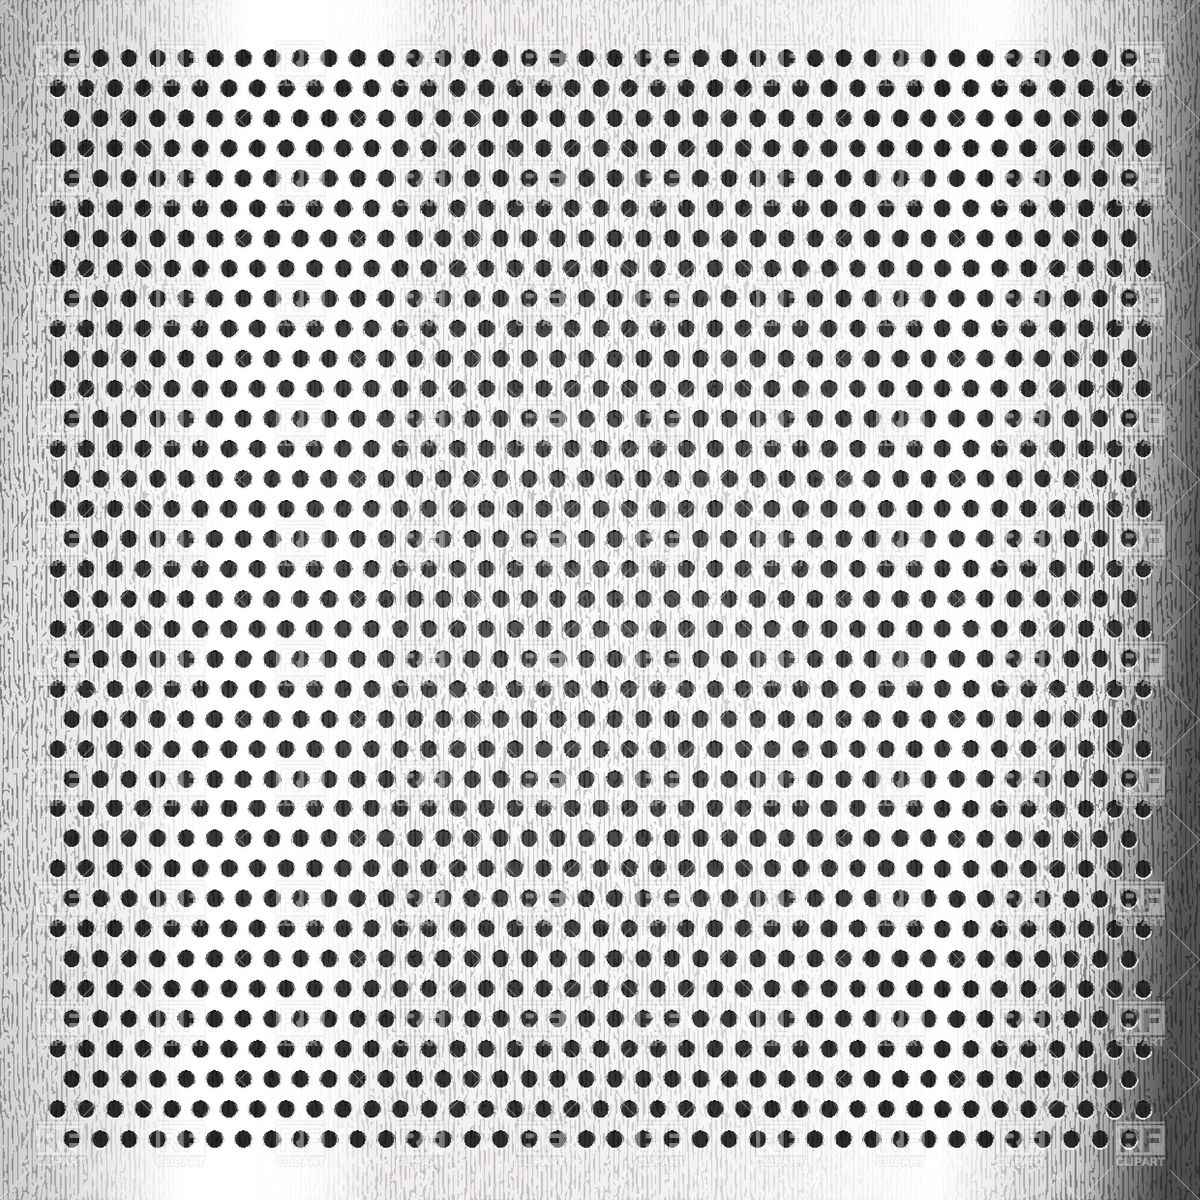 Scratched aluminum perforated background Vector Image #18426.